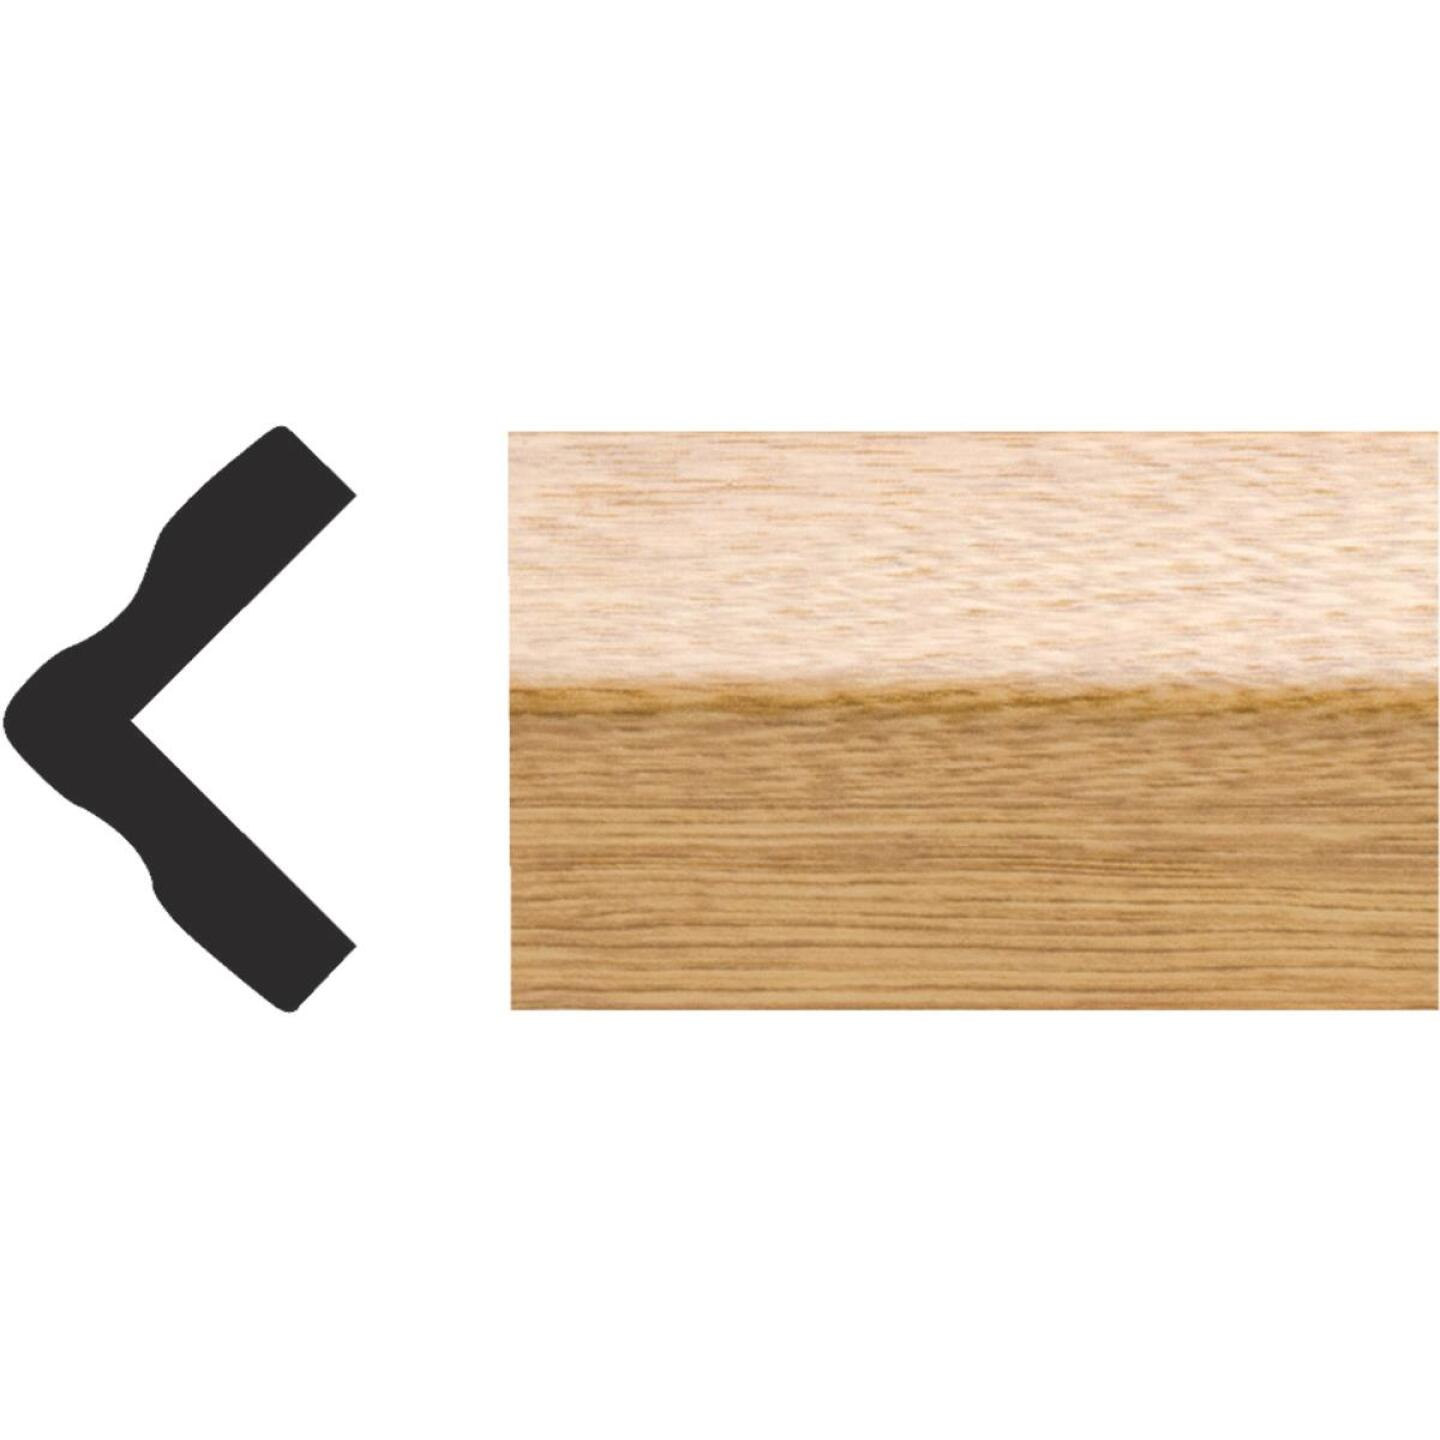 Royal 1 In. x 1 In. x 8 Ft. Imperial Oak PVC Interior Outside Corner Molding Image 1